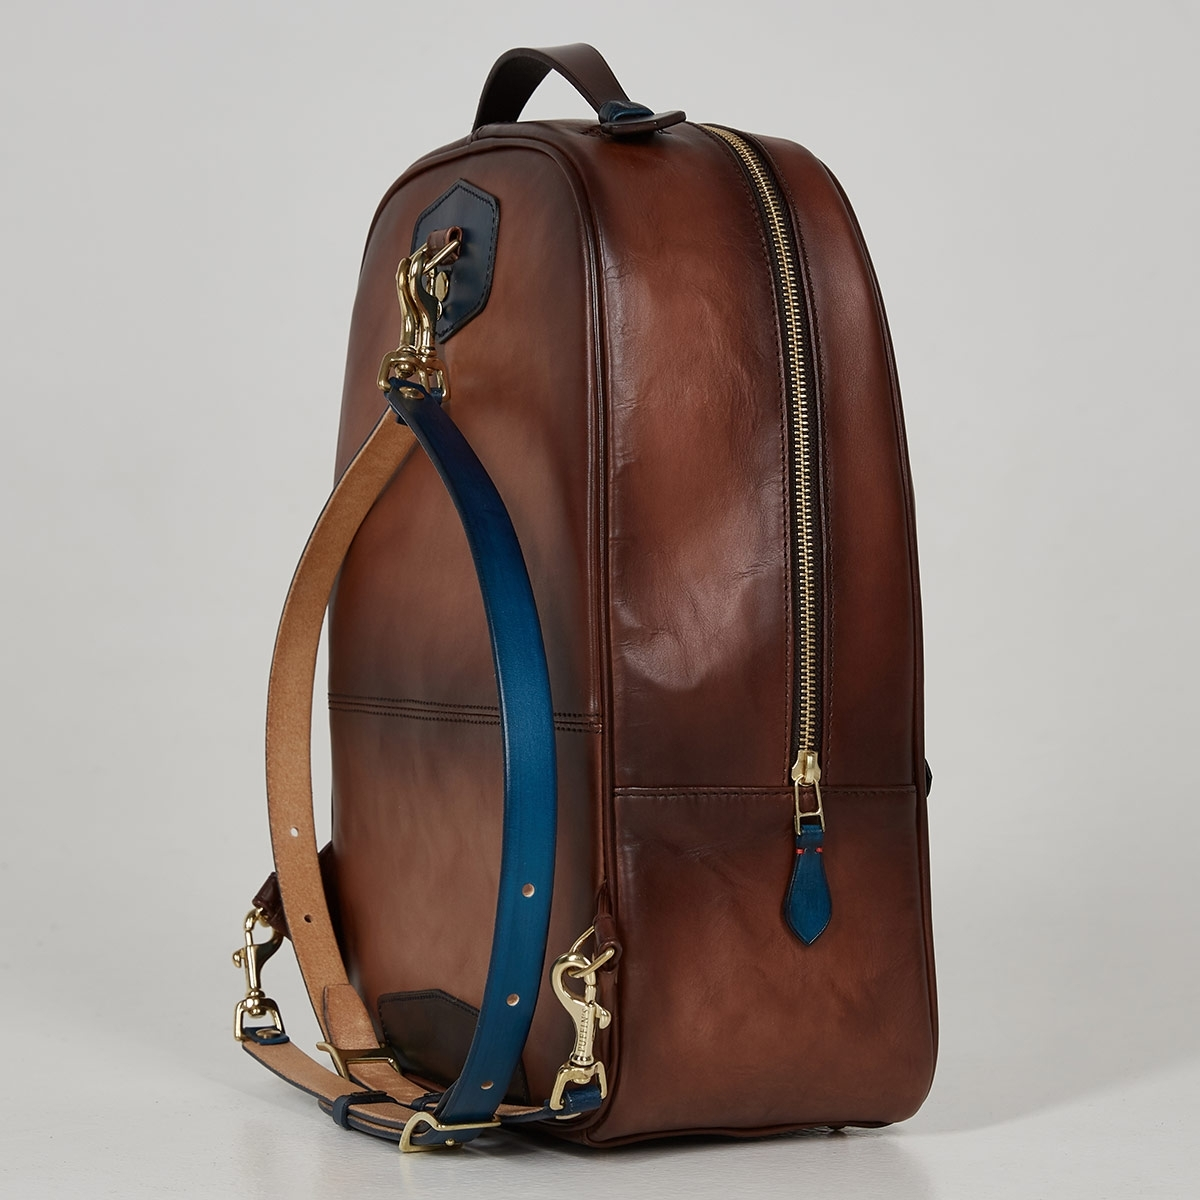 City backpack ASPEN sapphire blue & dutch cocoa